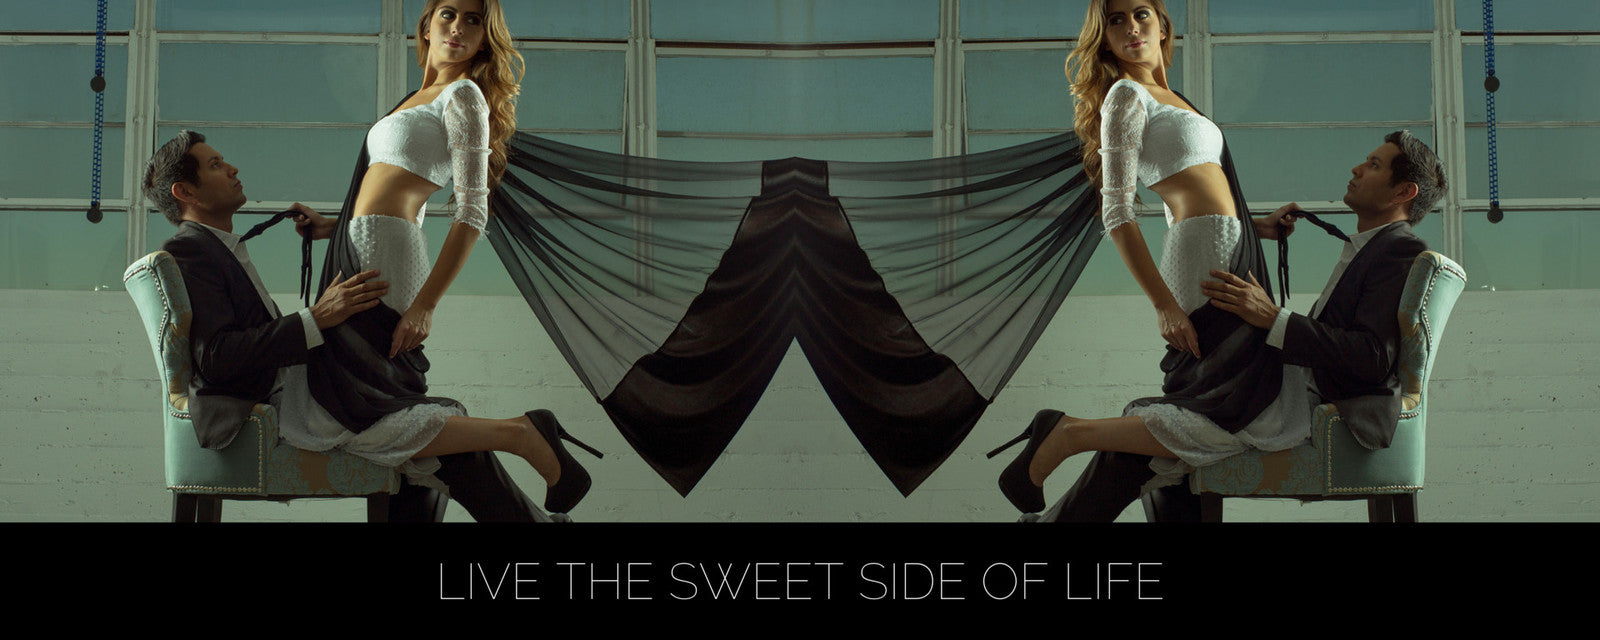 LIVE THE SWEET SIDE OF LIFE